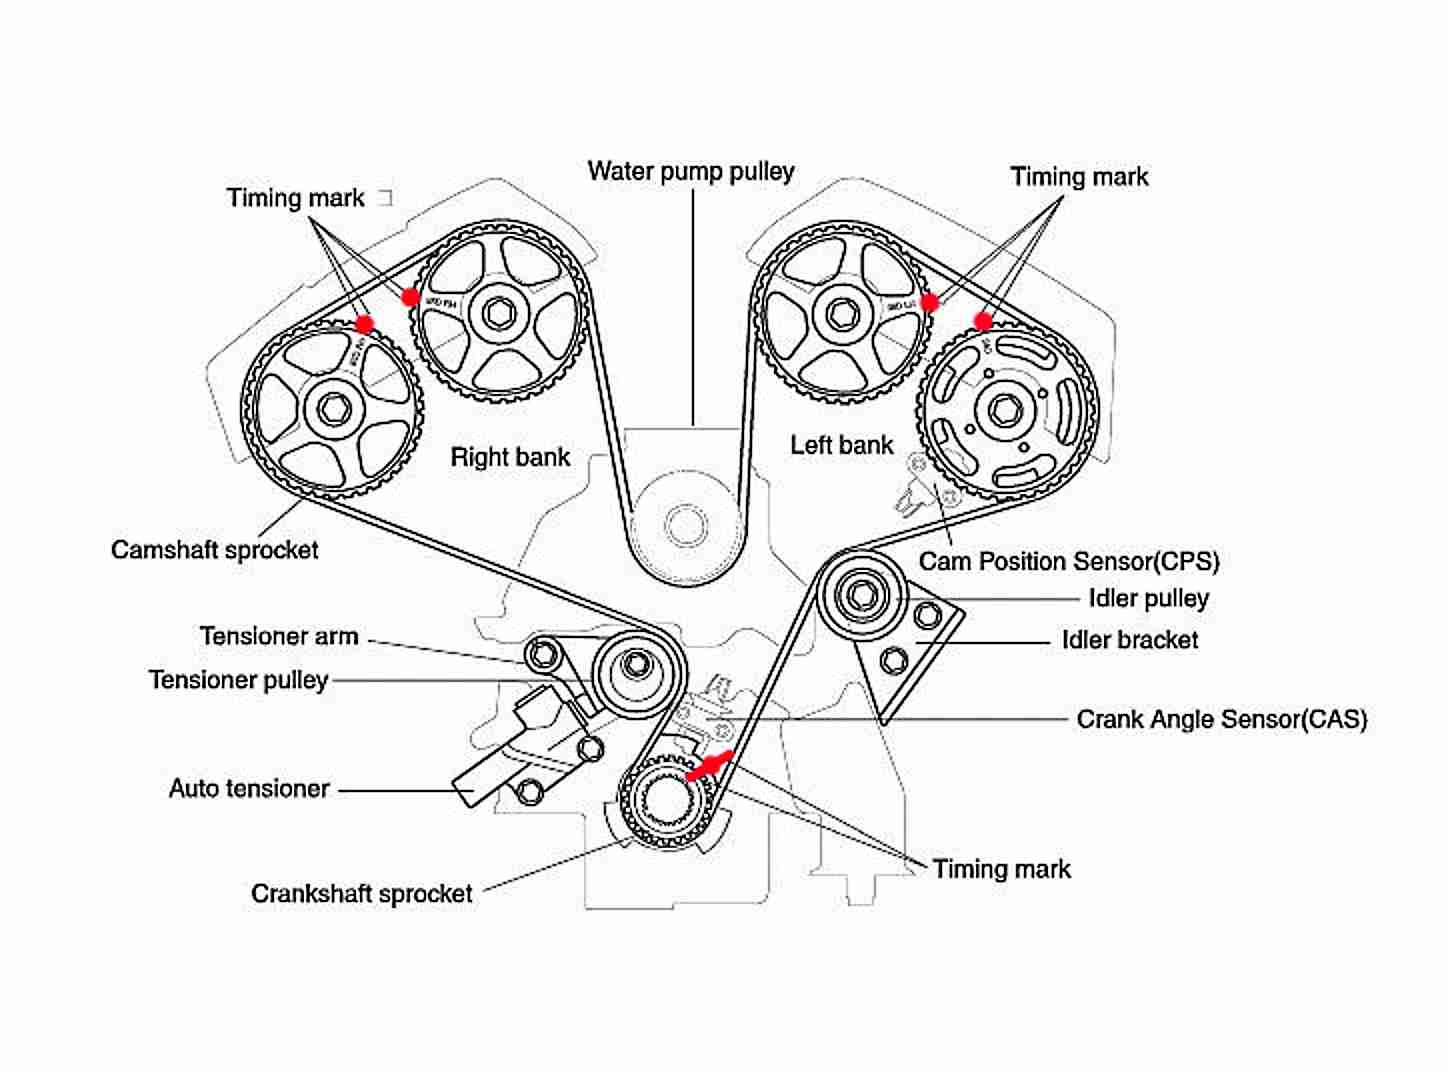 P 0996b43f81b3d108 furthermore How To Replace Timing Chains On Ford Ka 1 3 Tdci 2008 additionally 2005 Ford Freestyle V6 3 0l Serpentine Belt Diagram likewise 229940 Fuel Pump Fuse together with Diagrama De Tiempo De Un Nissan Maxima 99 V6 30. on nissan sentra 2003 engine diagram